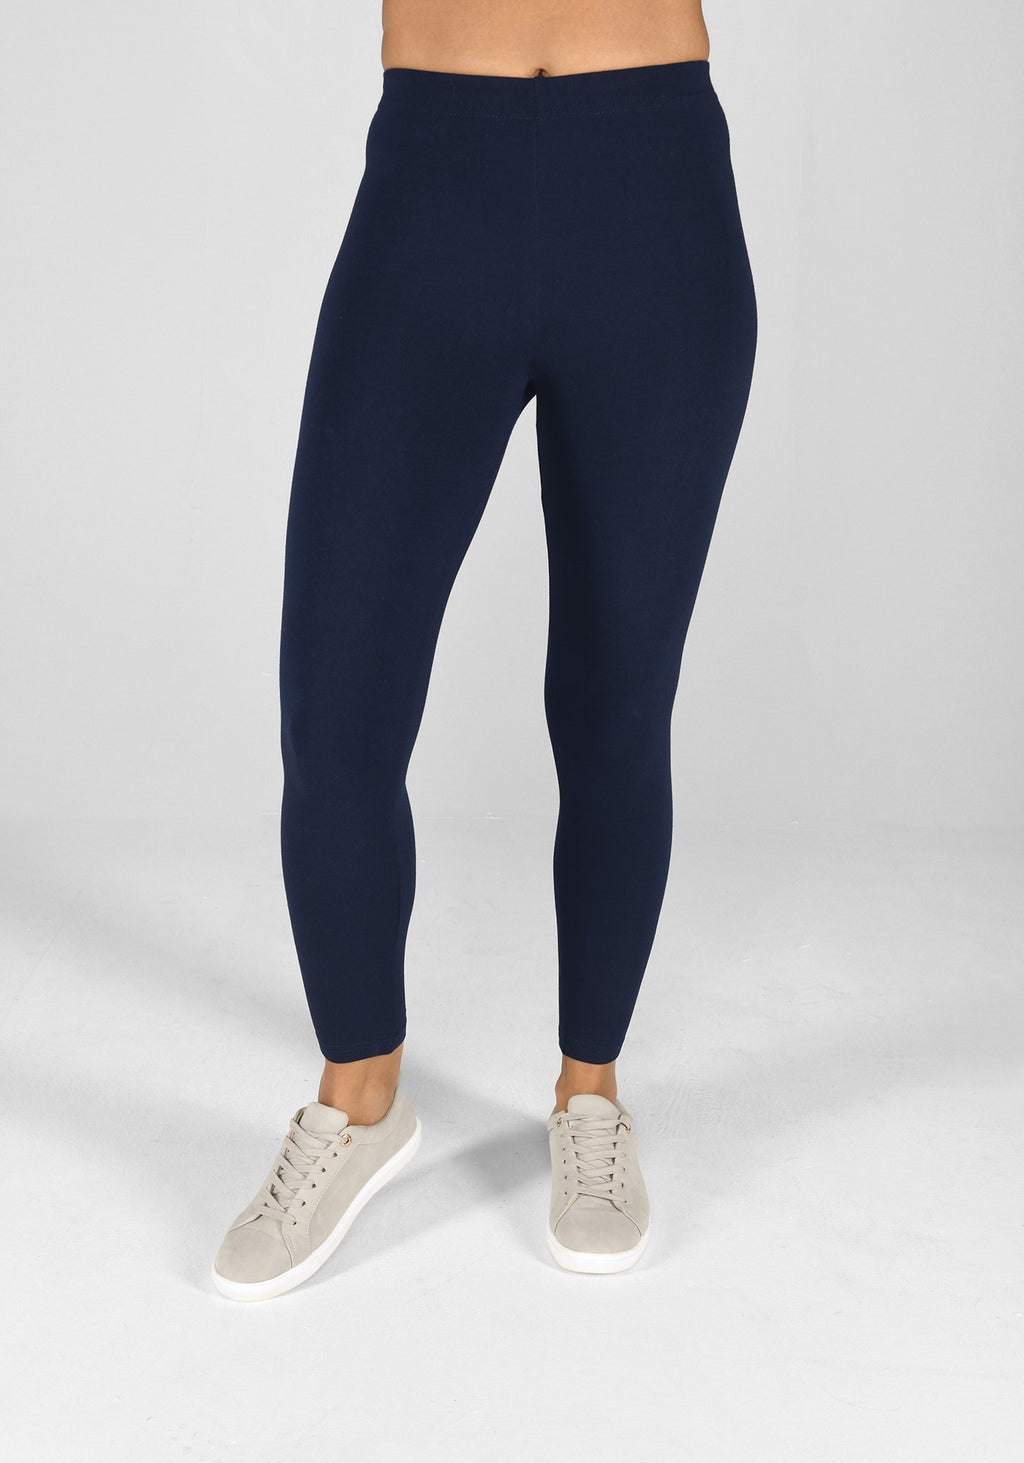 navy blue classic leggings 1